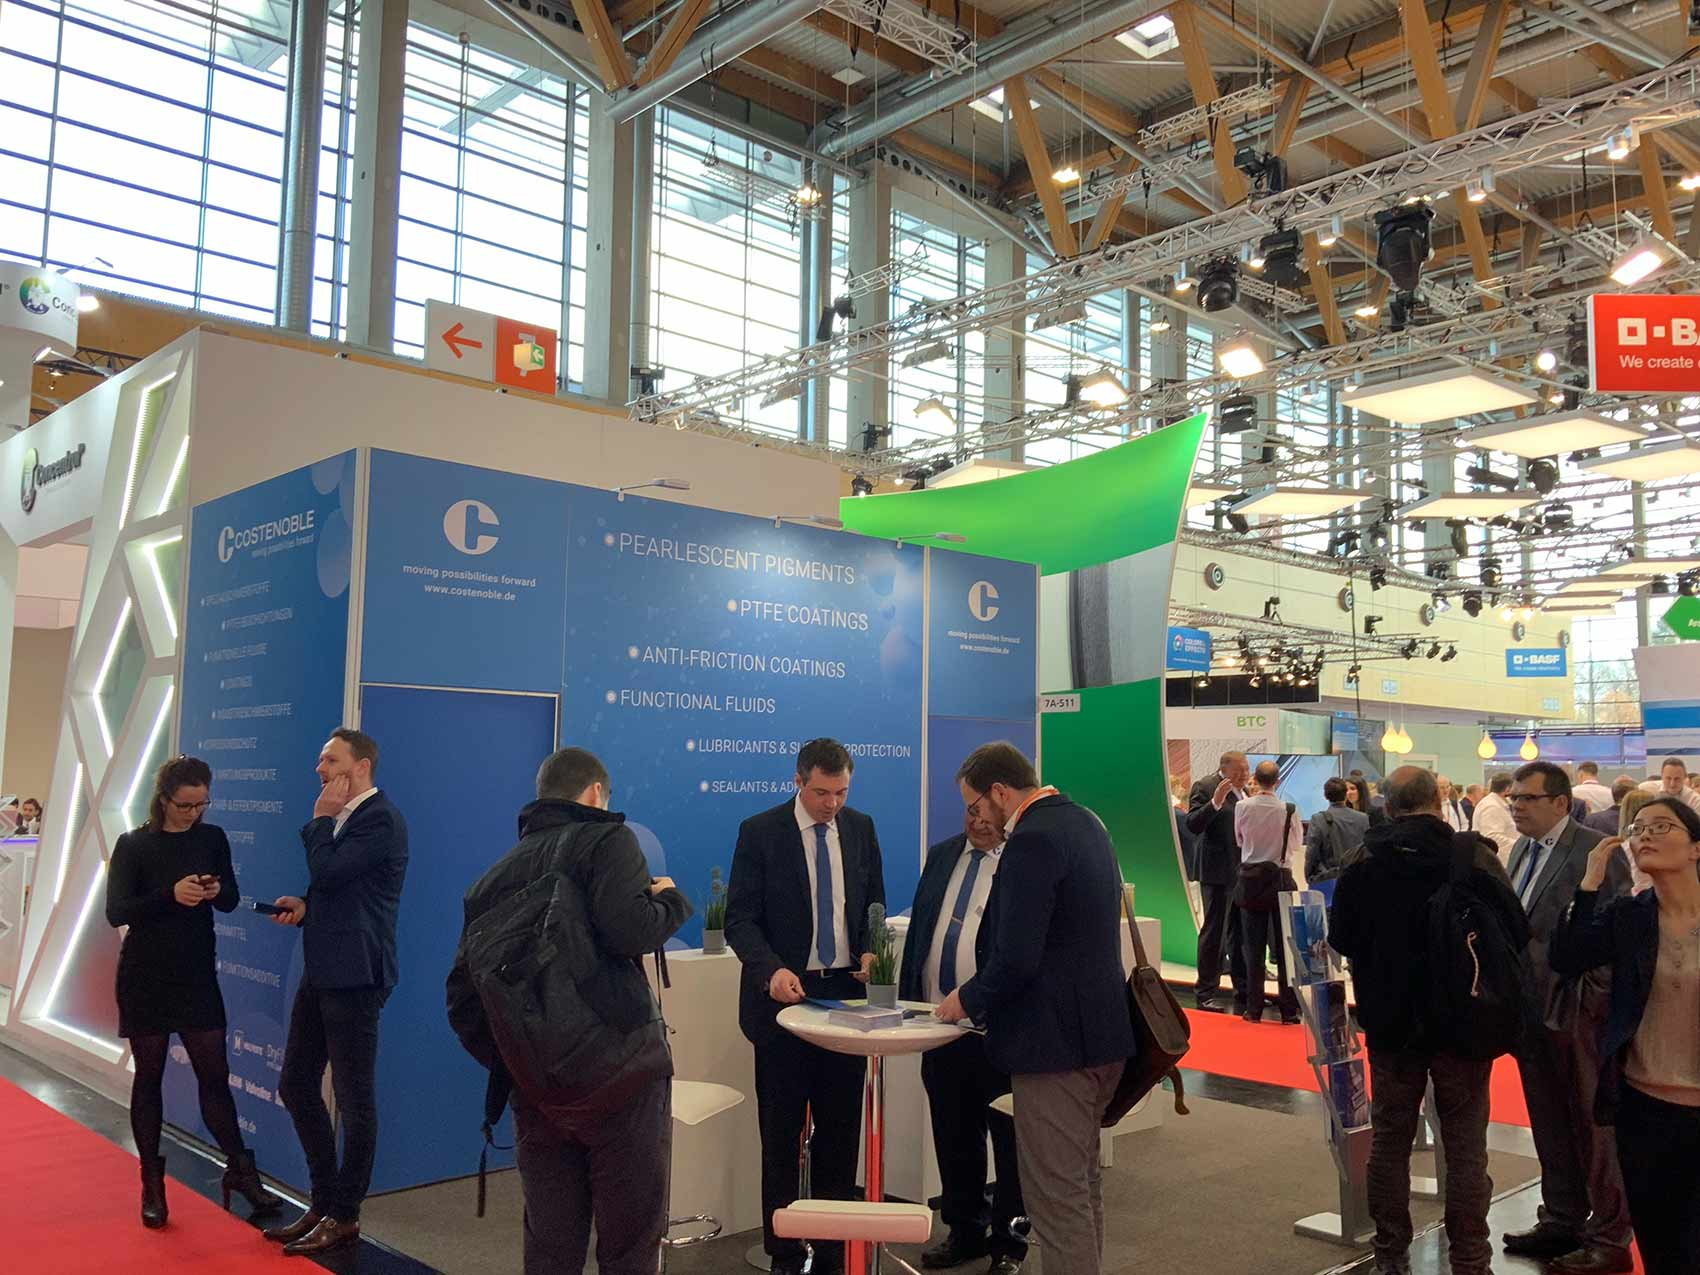 ECS 2019 - Costenoble Hall 7A, Booth 511